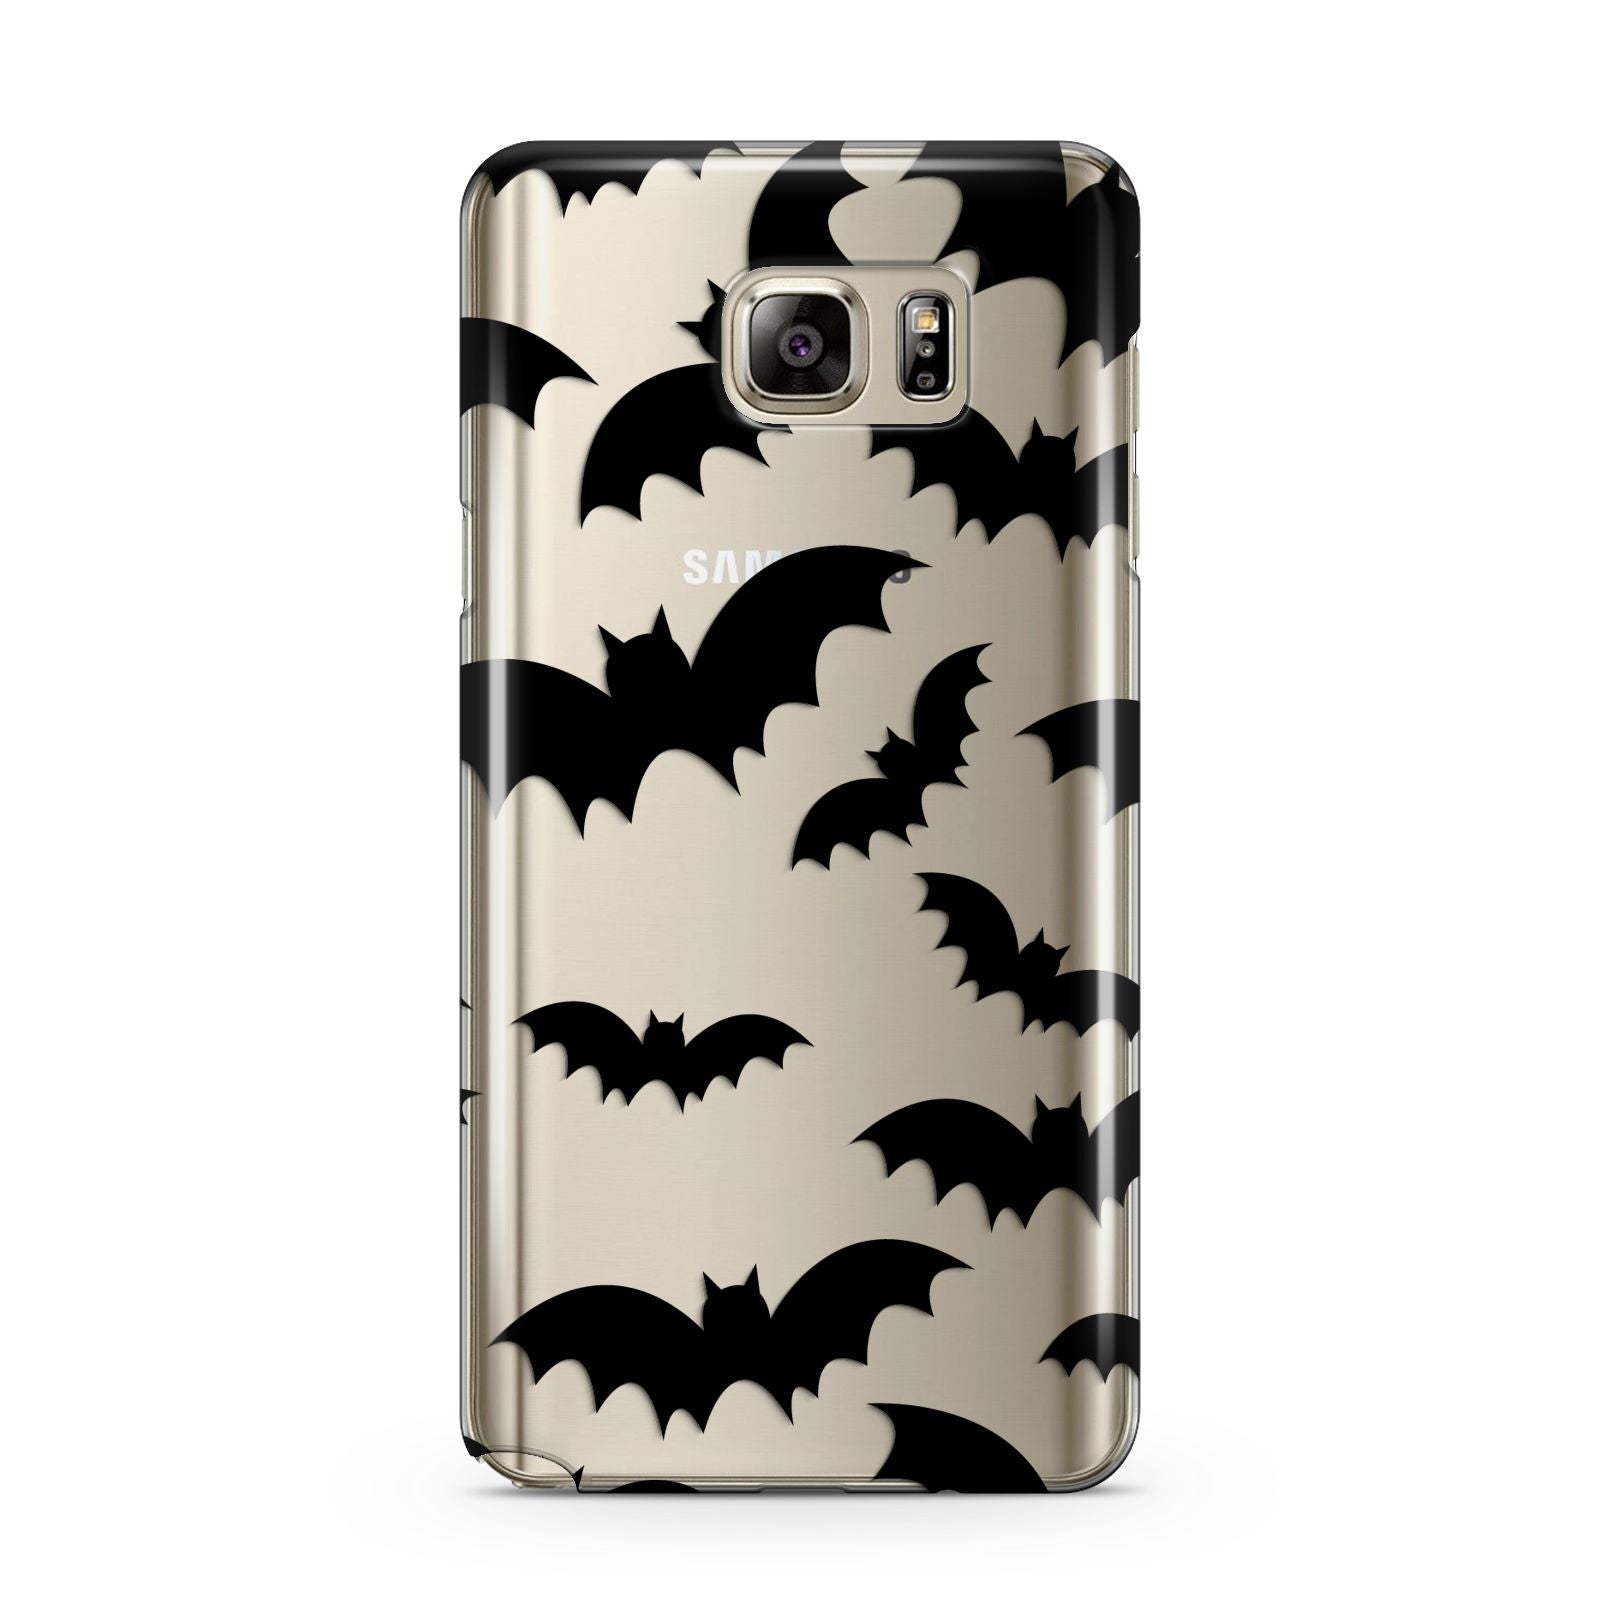 Bat Halloween Print Samsung Galaxy Note 5 Case